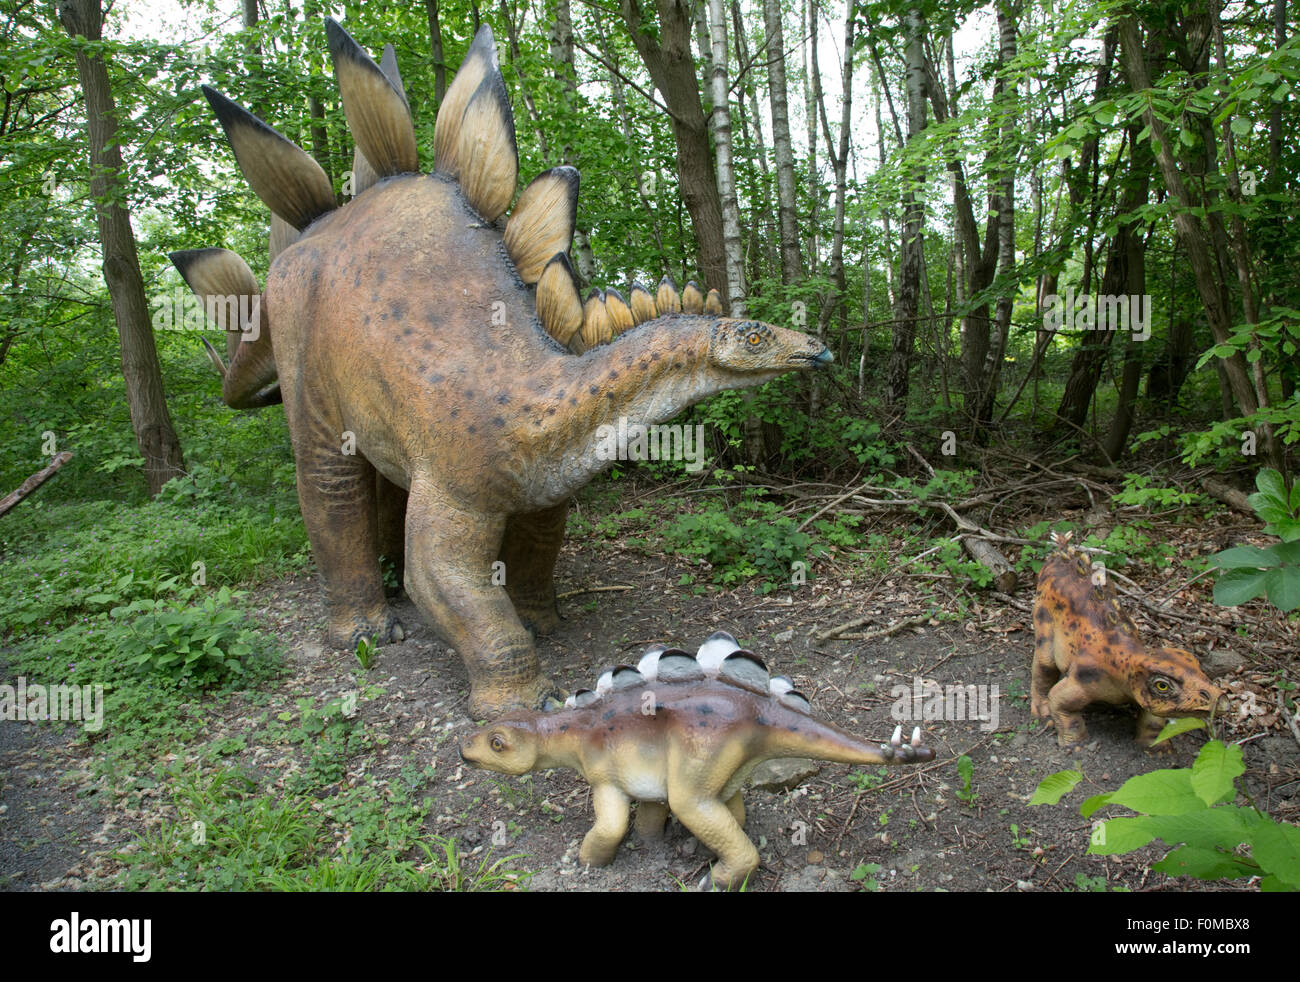 Stegosaurus large extinct Jurassic herbivore Dinosaurier Park Germany - Stock Image